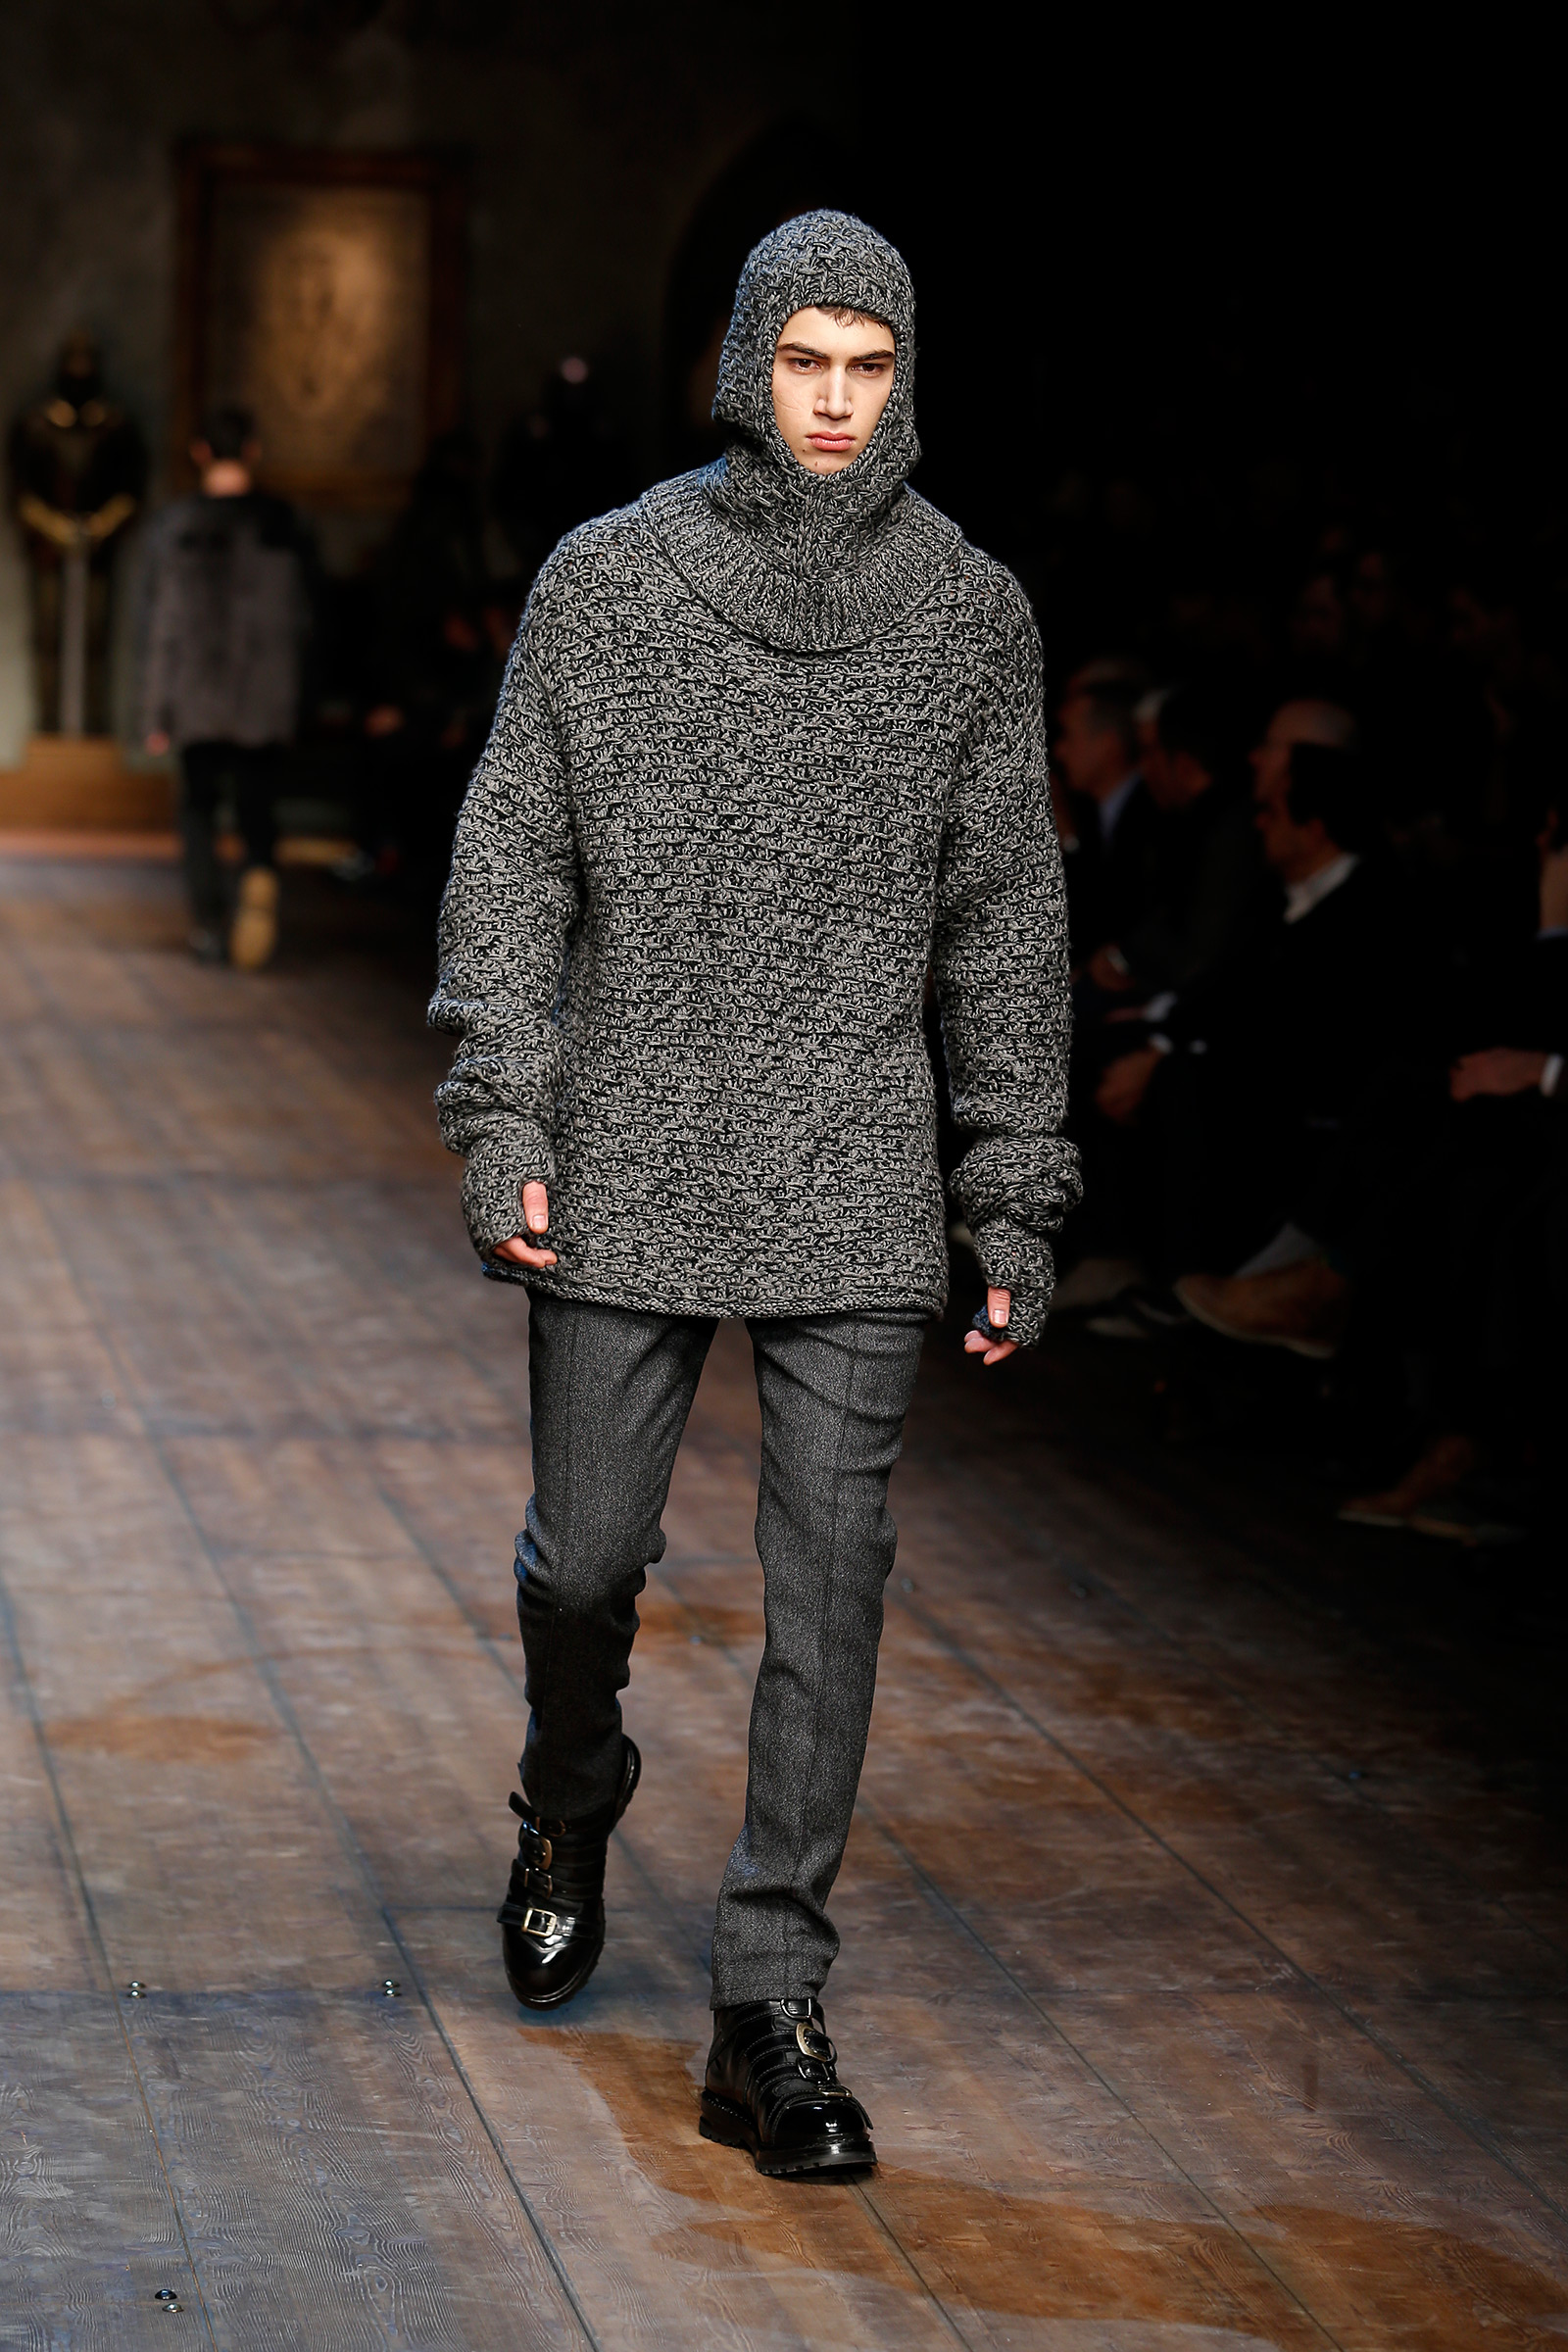 dolce-and-gabbana-fw-2014-2015-men-fashion-show-runway-46